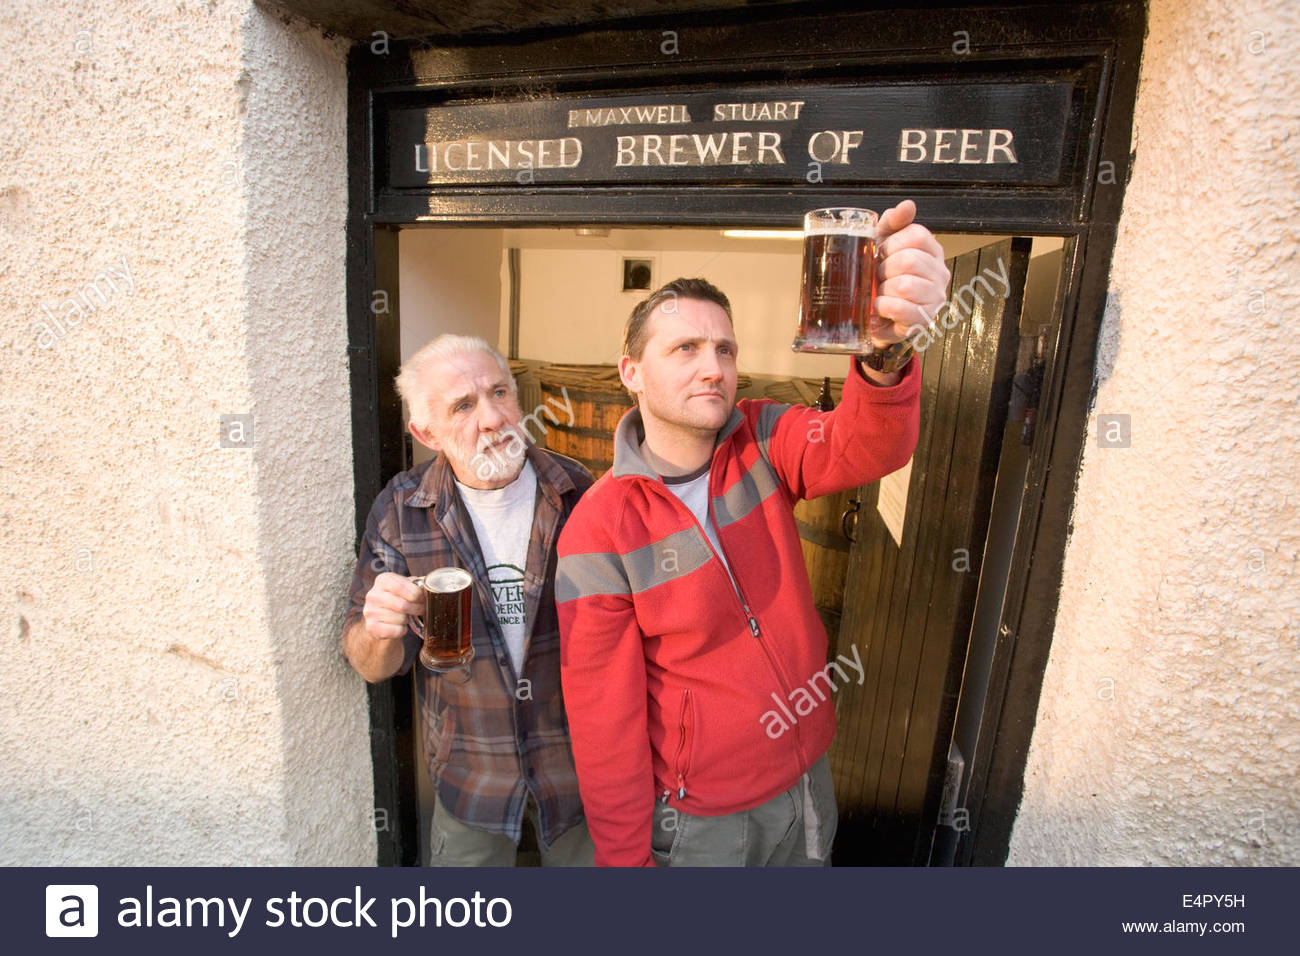 Two brewers raise a glass in the doorway to the tun room at the original brewhouse at Traquair House Brewery, Traquair - Stock Image